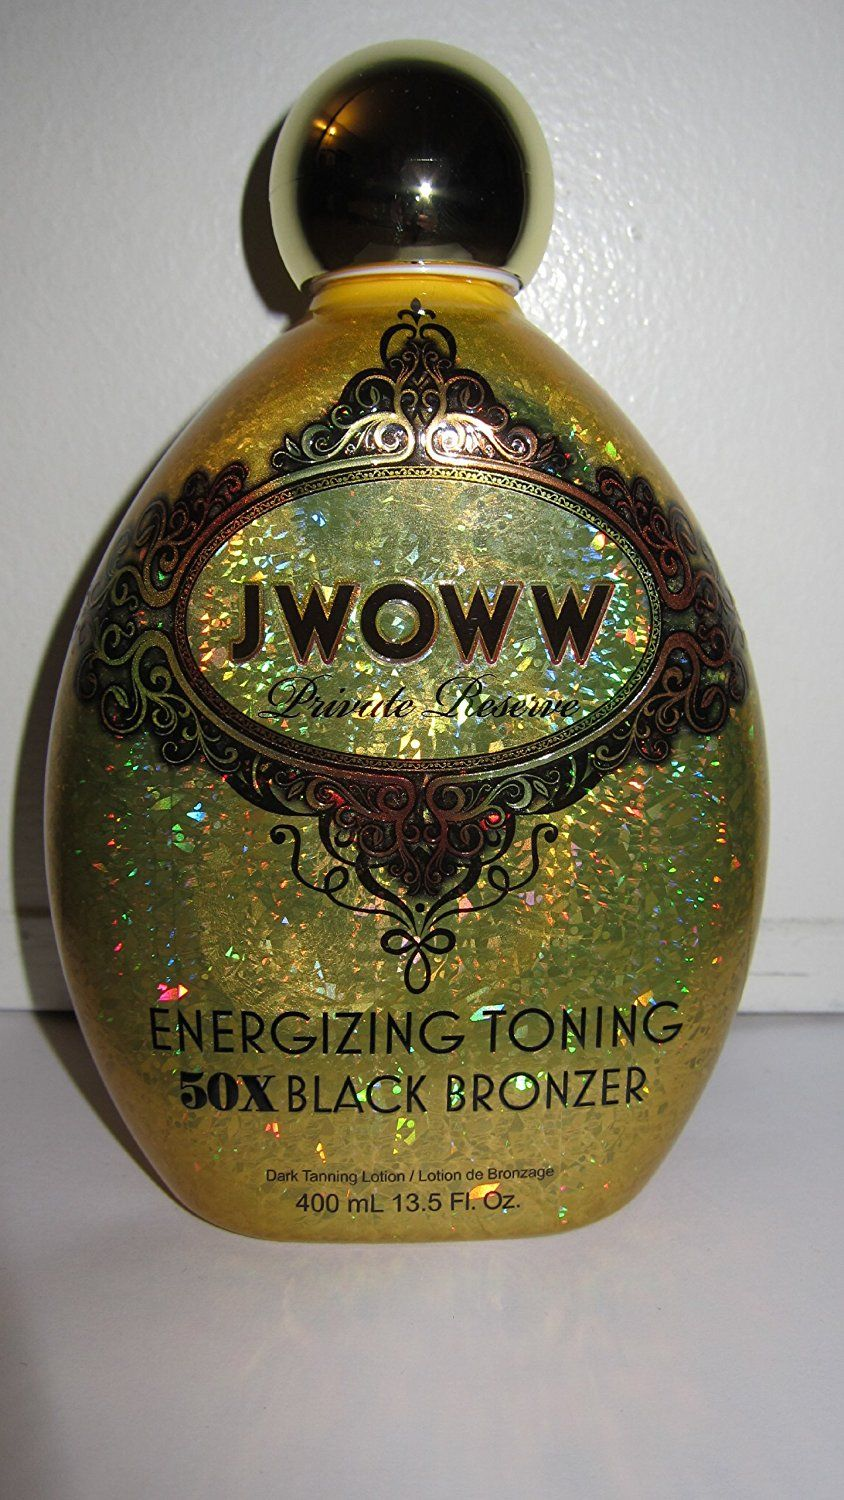 Australian Gold JWOWW Private Reserve Energizing Toning